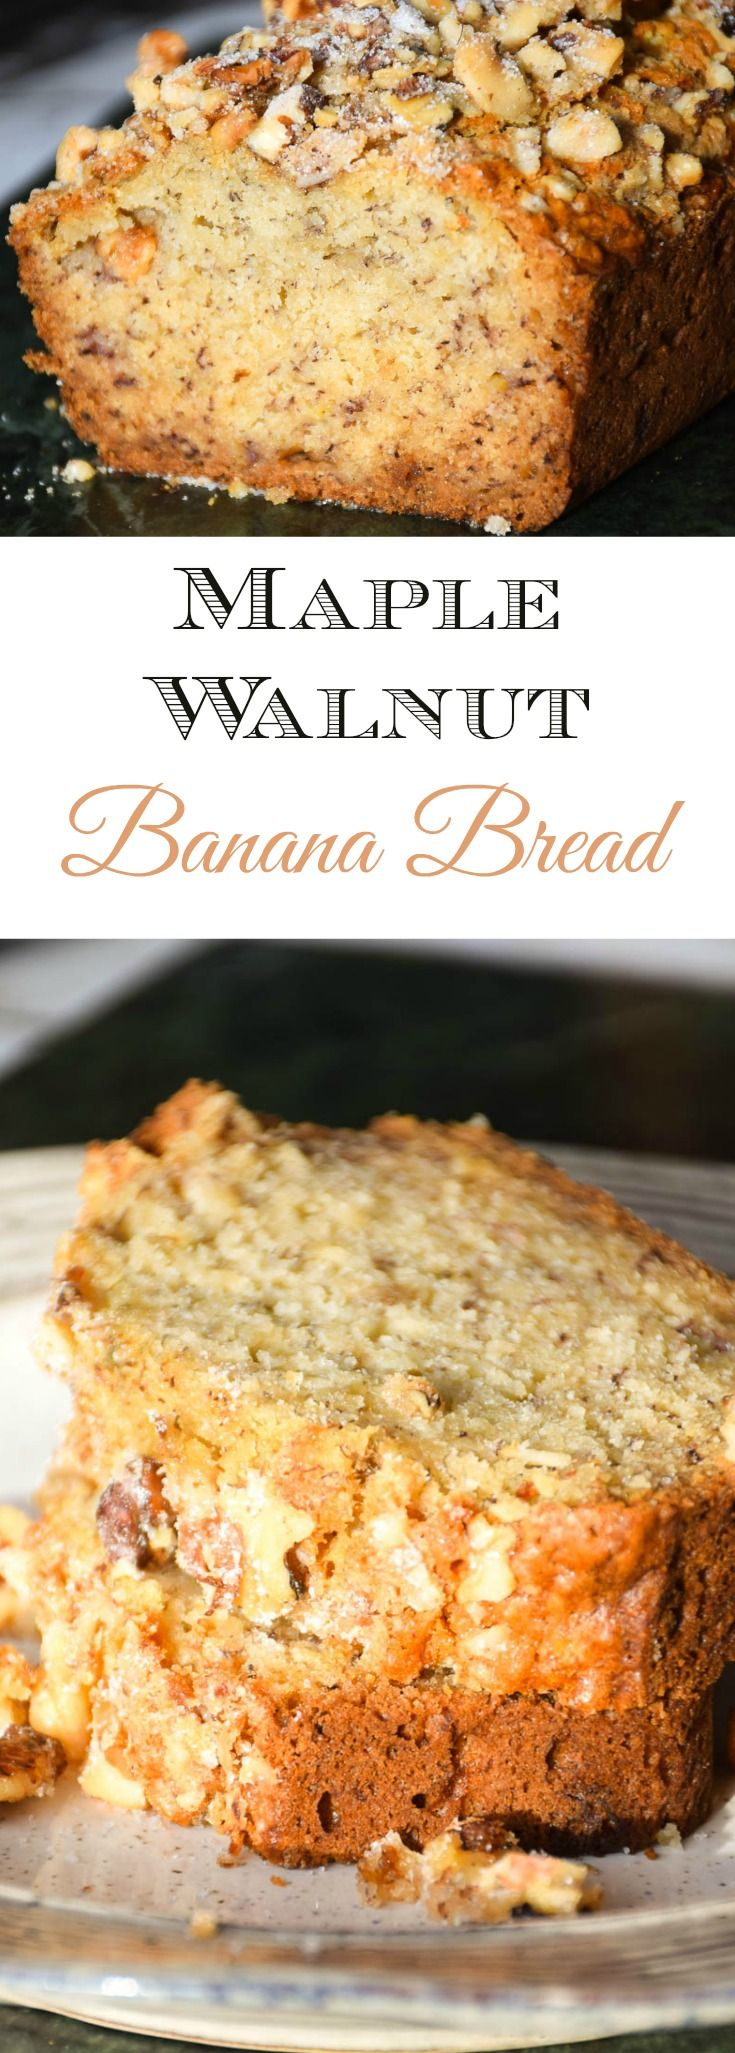 """Maple Walnut Banana Bread has great flavor buried in a slightly sugared walnut topping. Amazing texture and taste, add this recipe to your make next"""" list!"""